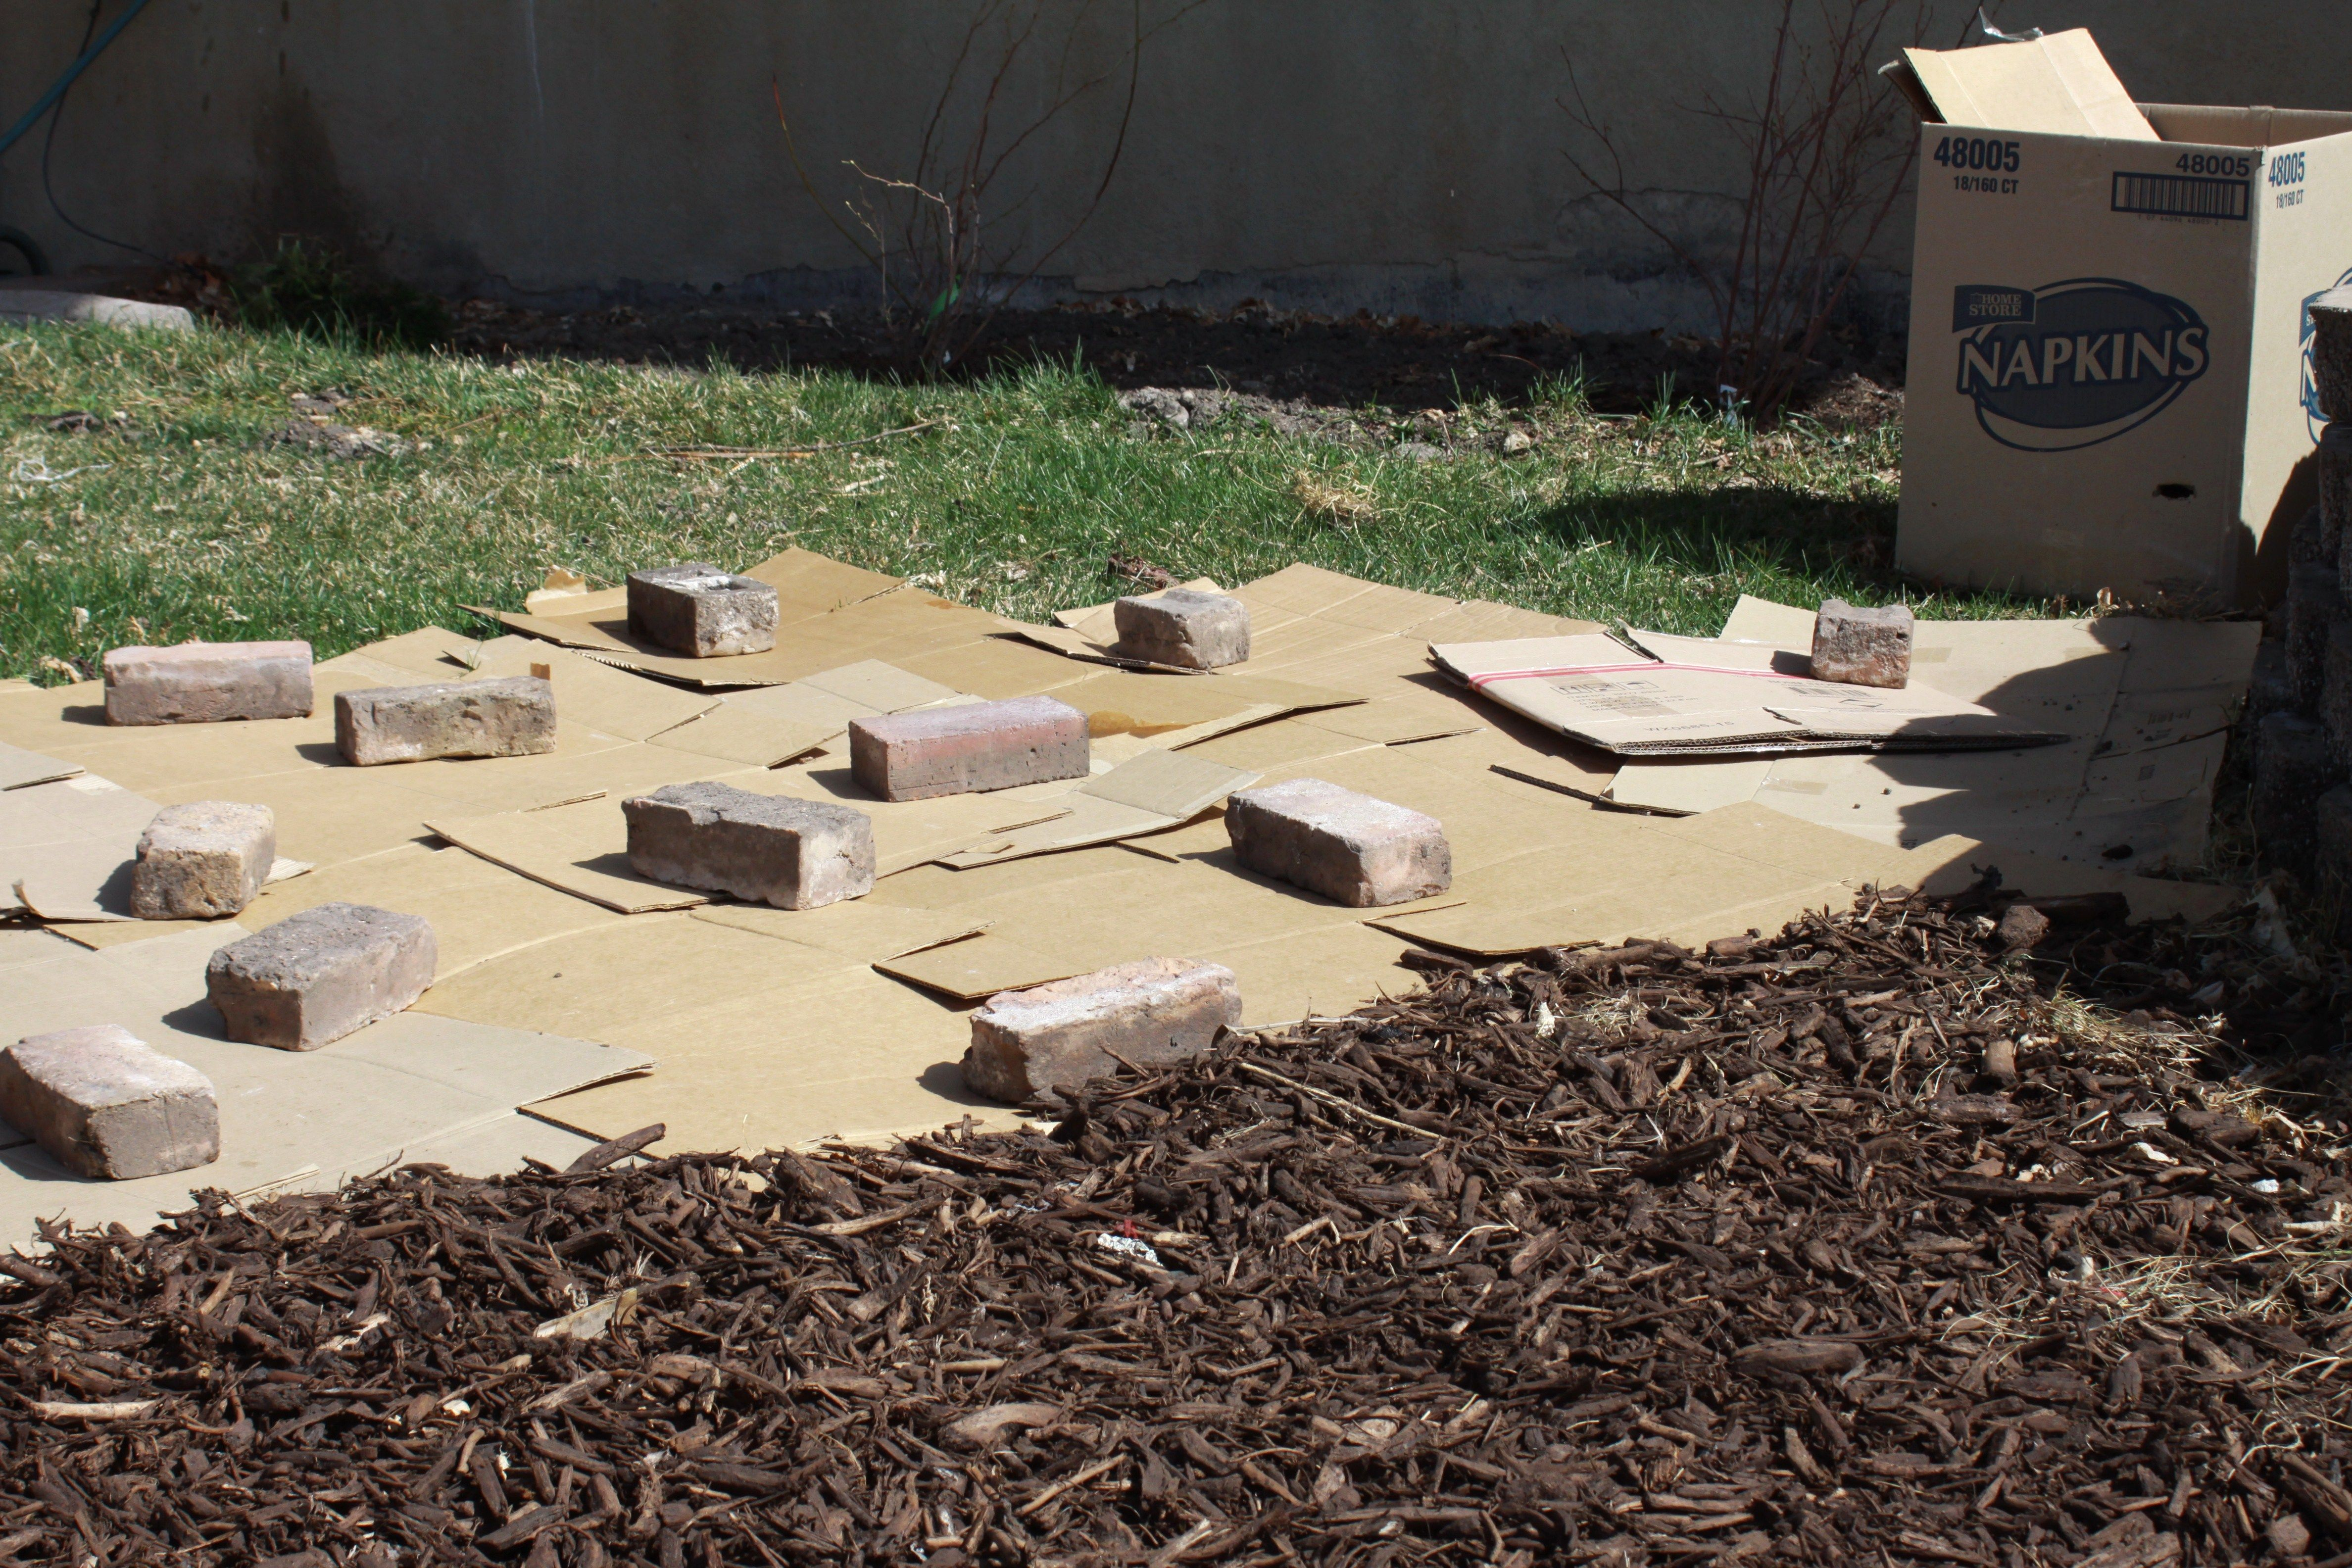 Lay interlocked cardboard boxes on your grass and spread mulch over the top. Wet it down to compact the layers and say goodbye to your grass. (Works much better than newspaper!)